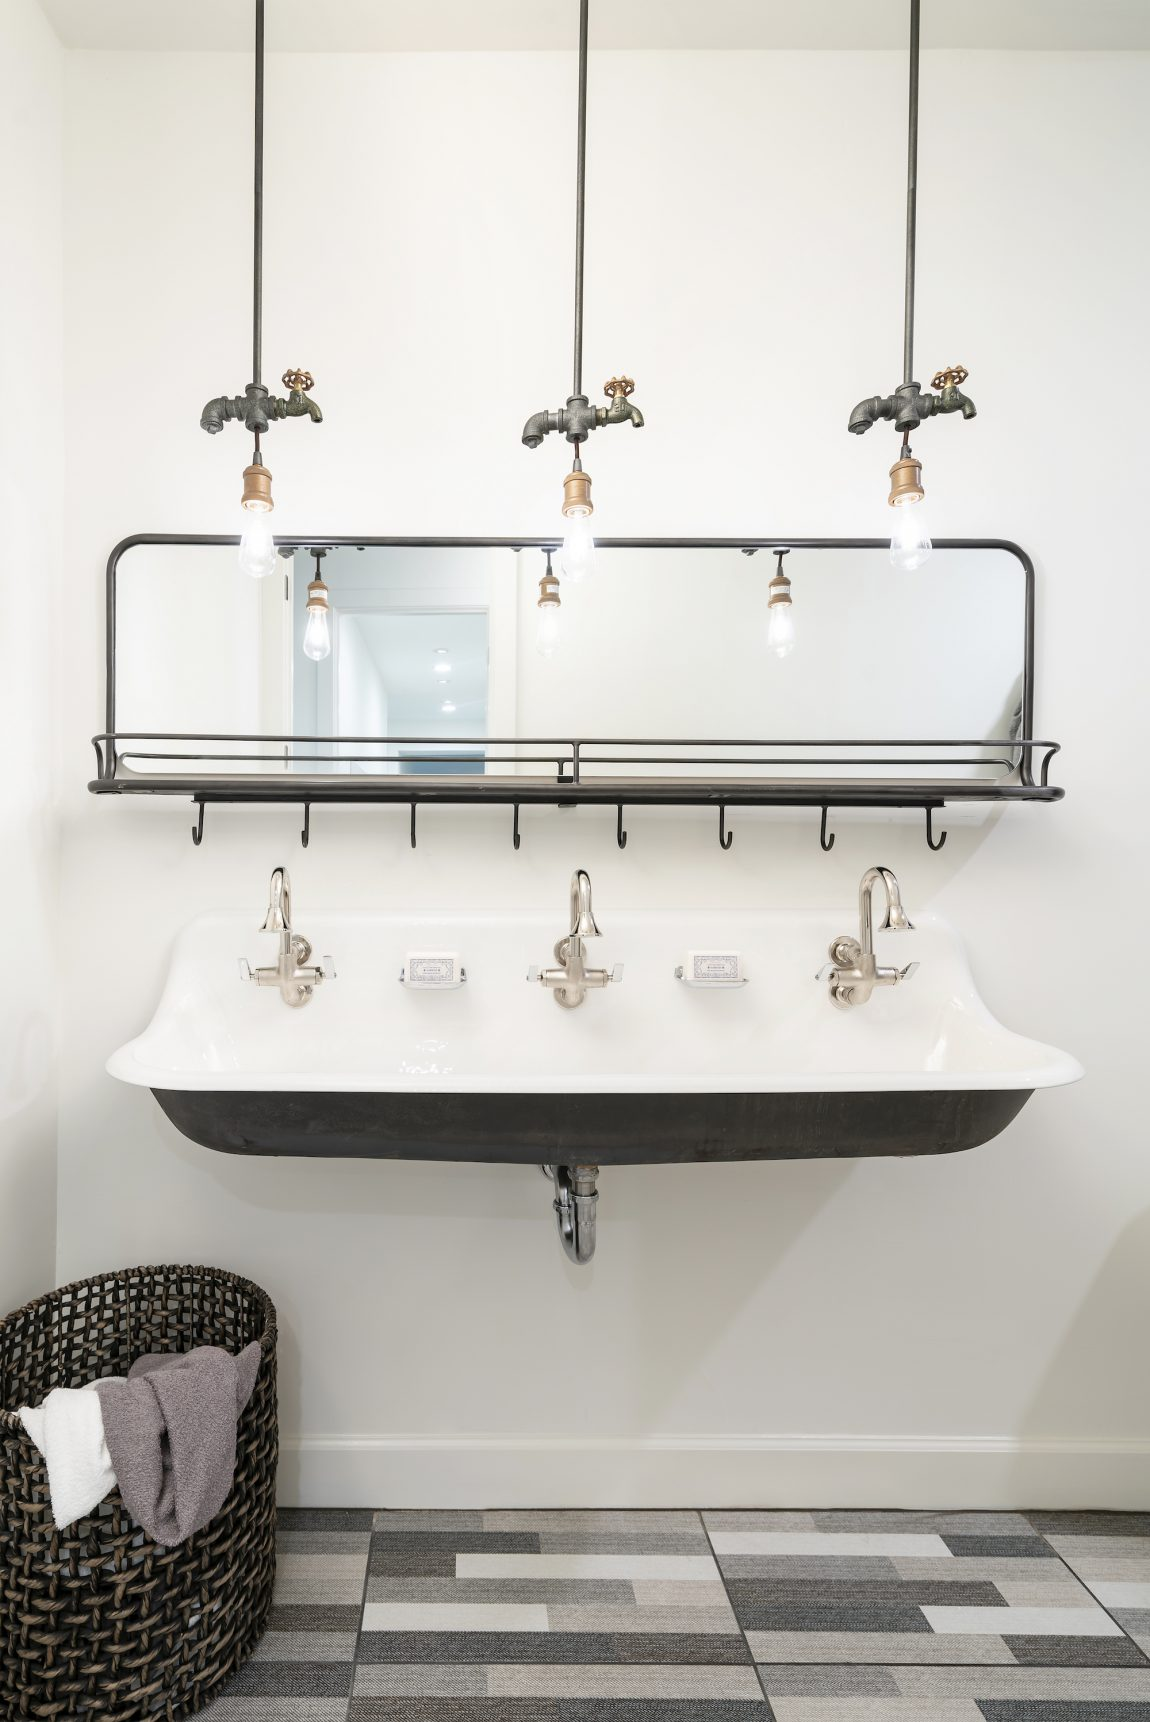 Sink with industrial fixtures and lighting.